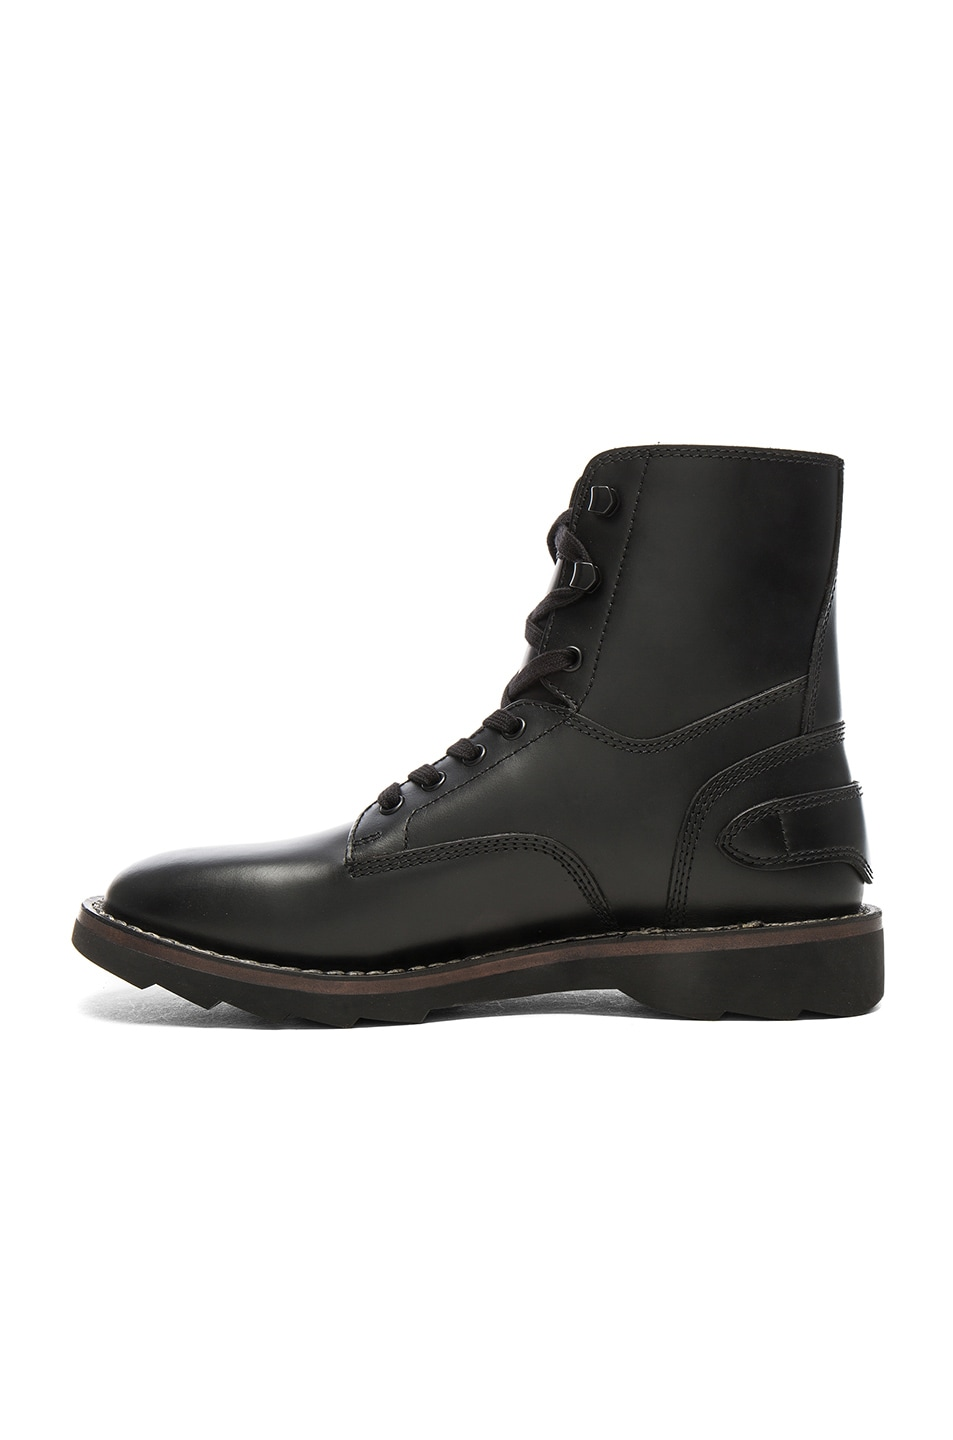 Image 5 of Coach 1941 Leather Combat Boots in Black